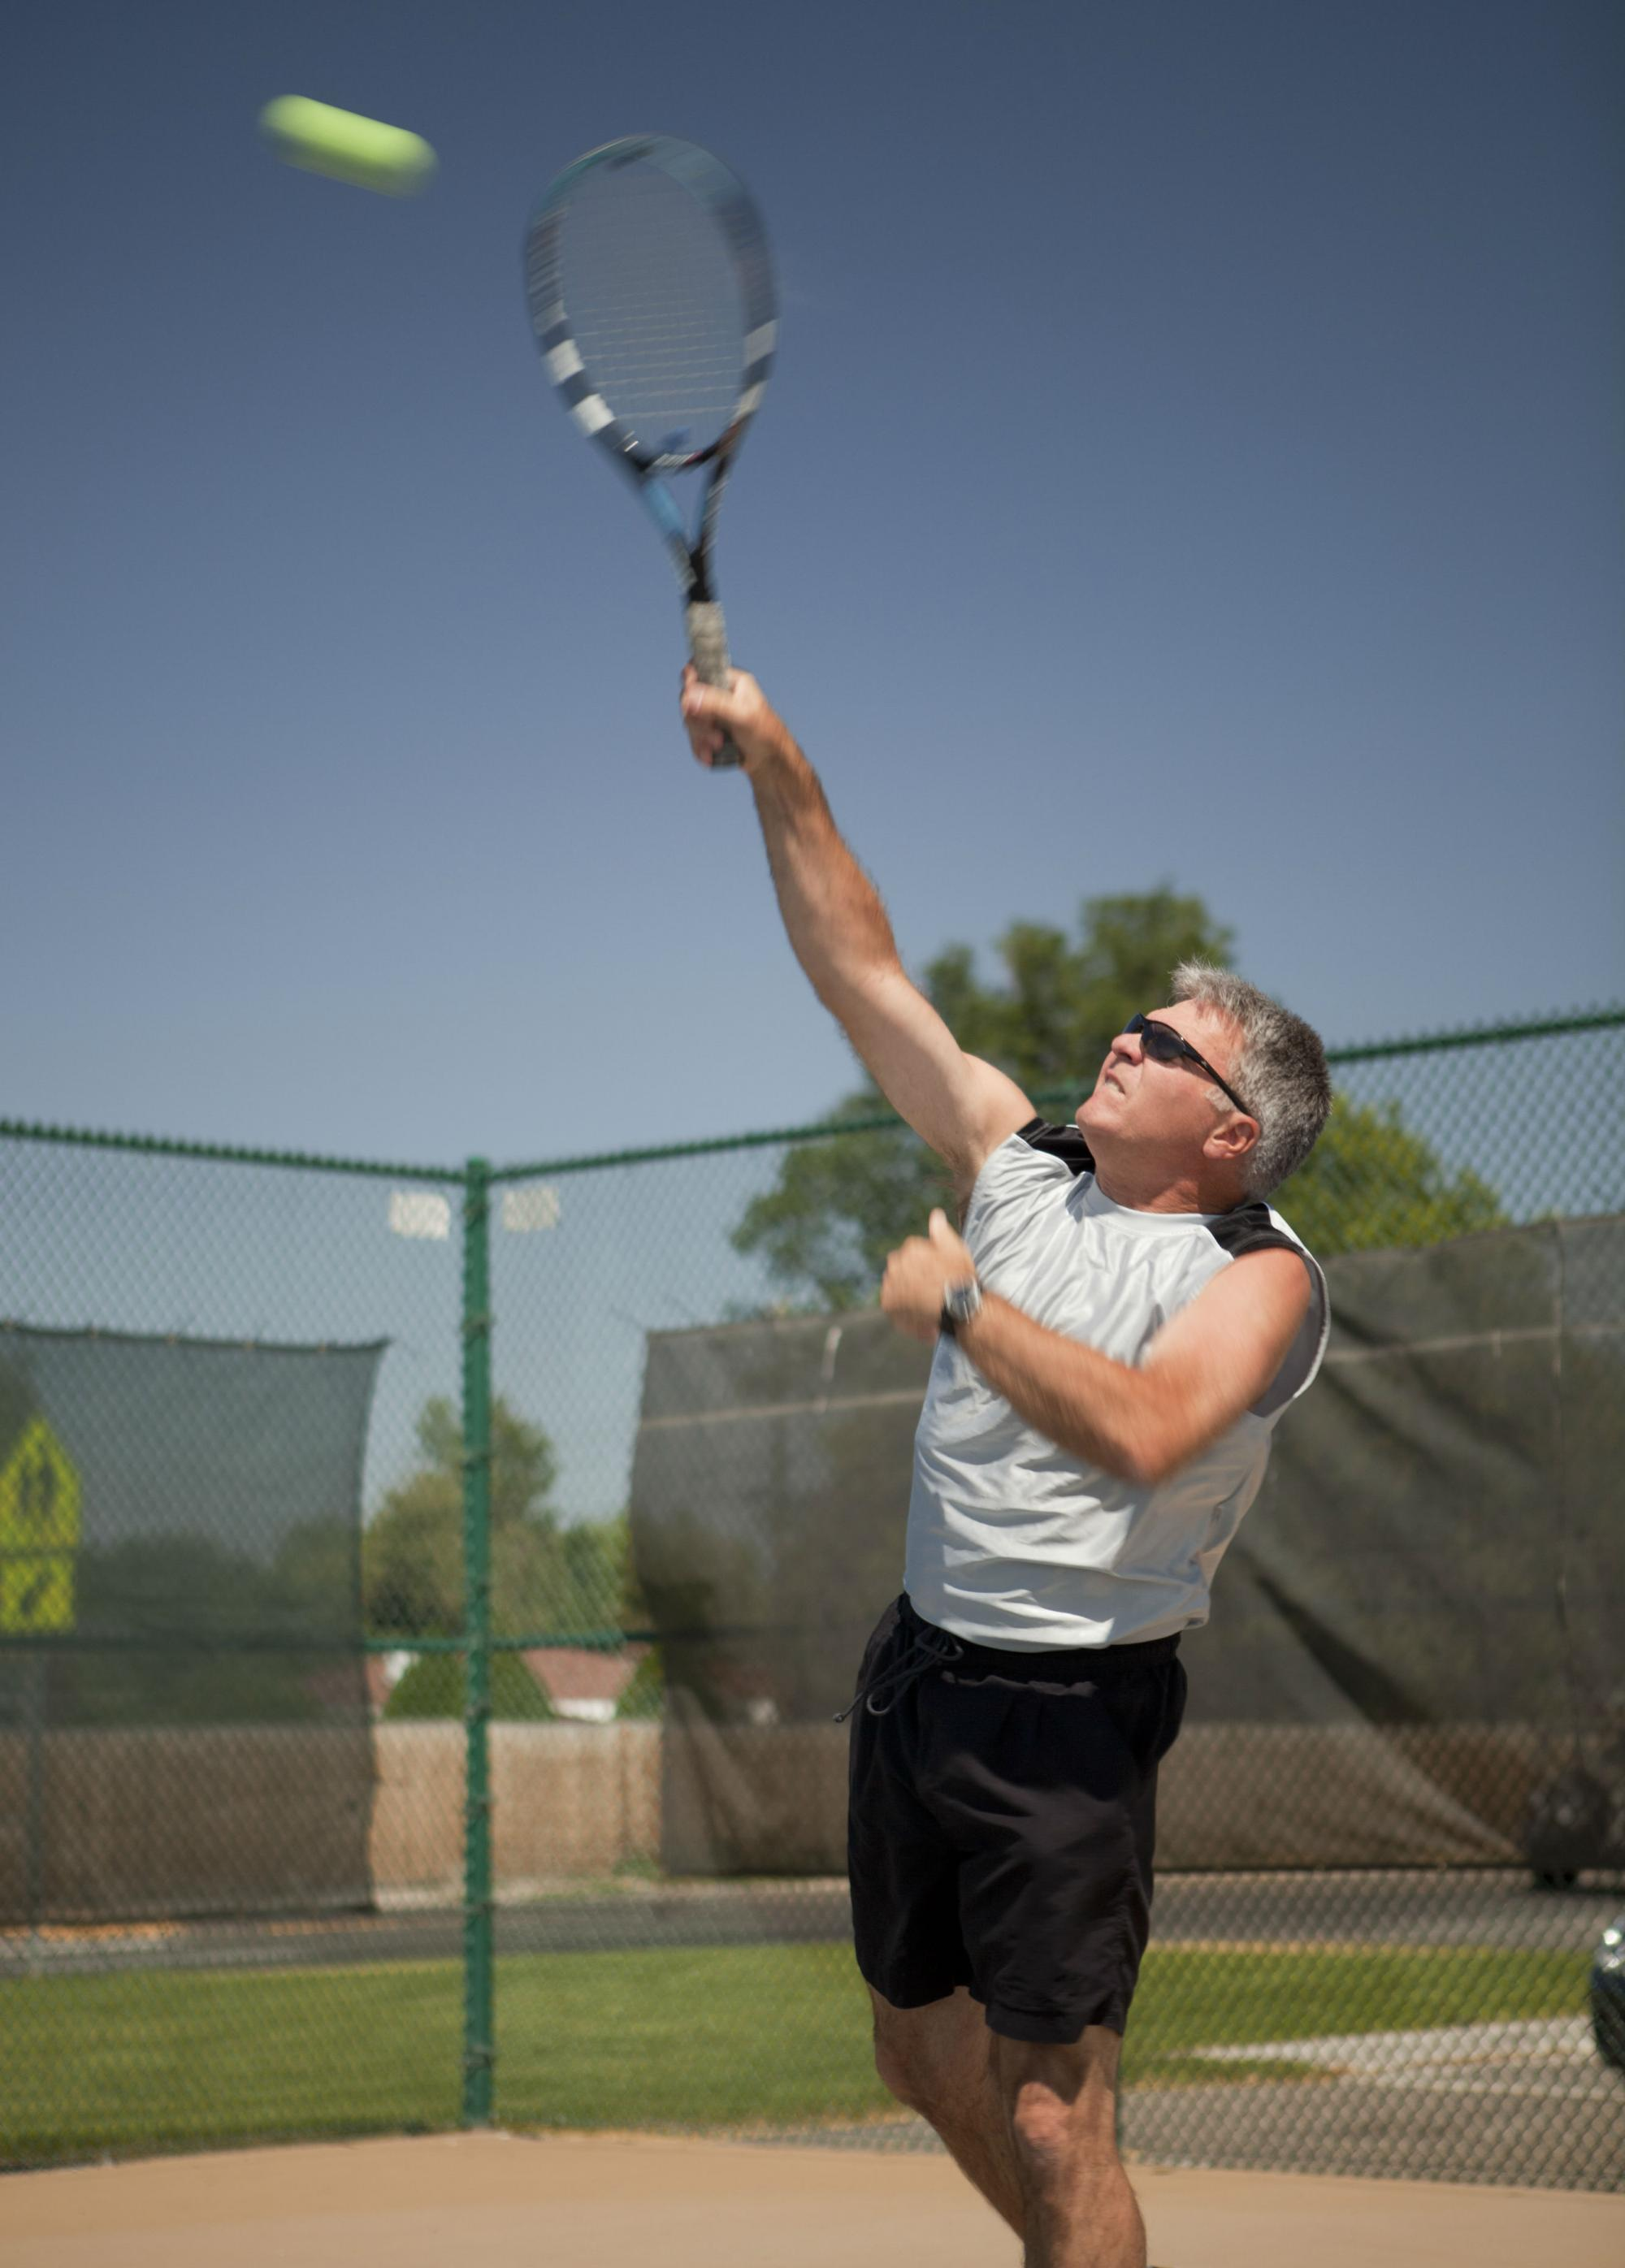 Tom Wagner, retired Physical Therapist playing tennis